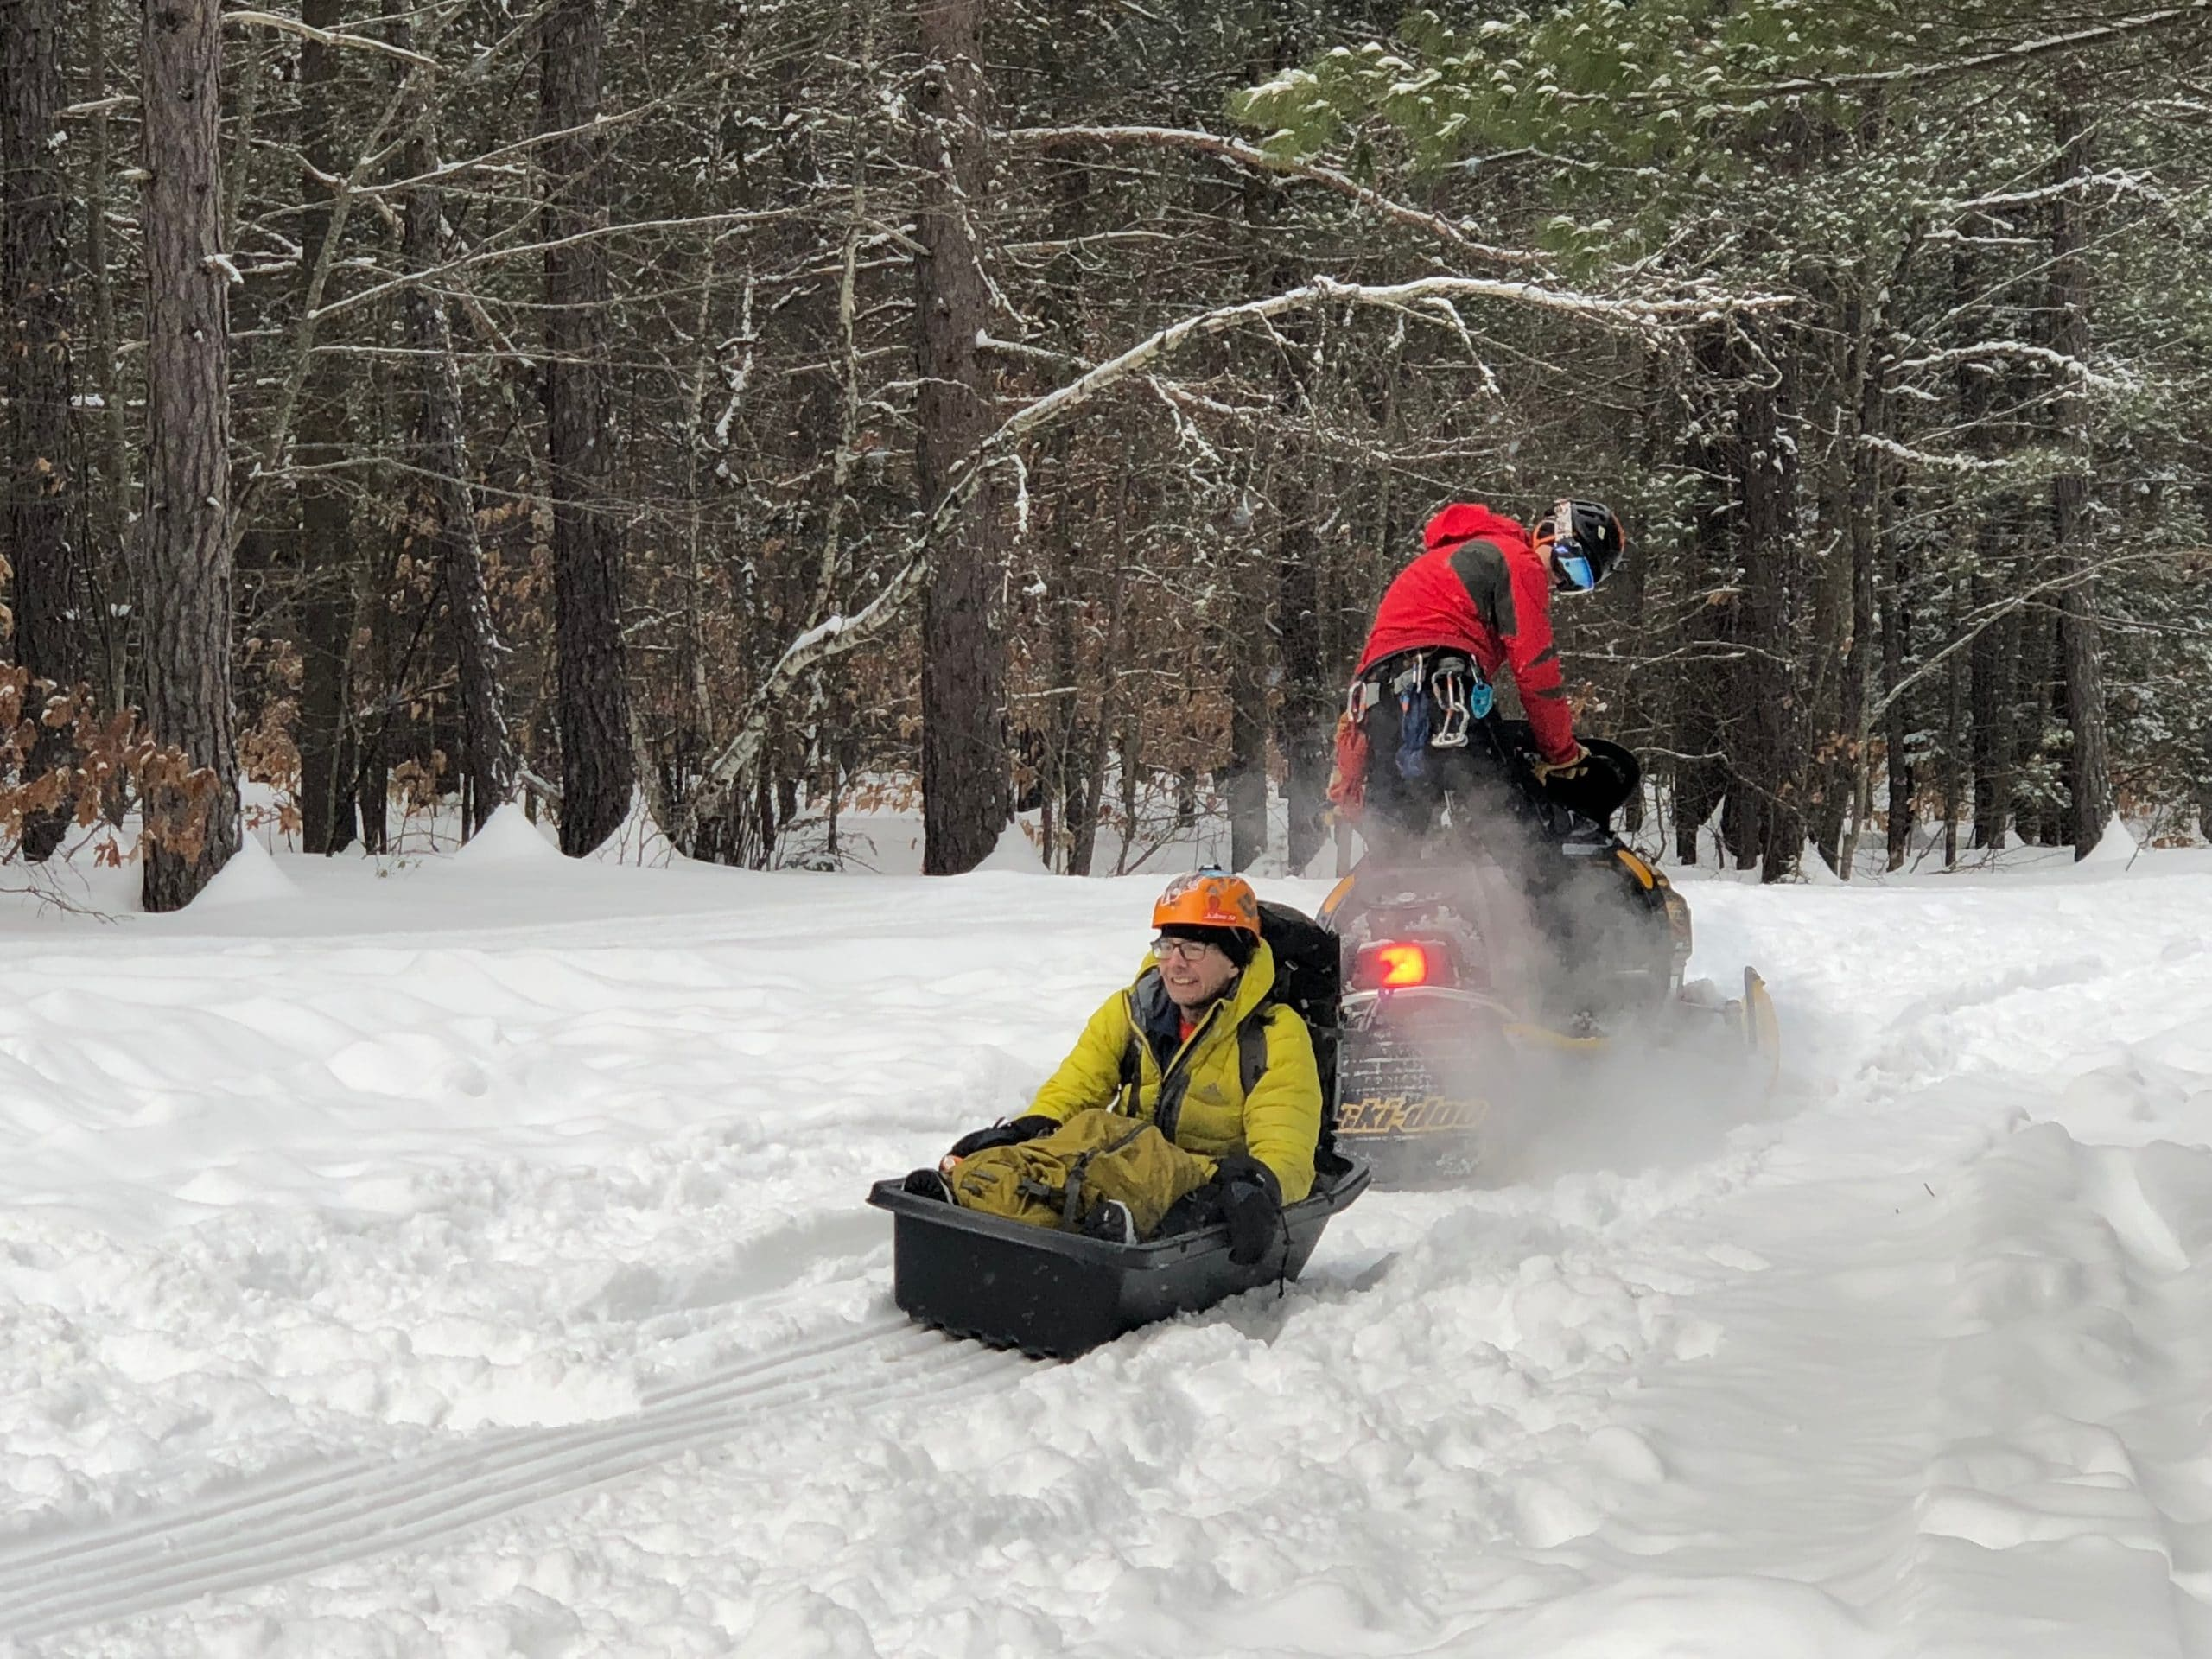 A snowmobile pulls a sled holding a man in a yellow snowsuit and orange helmet.